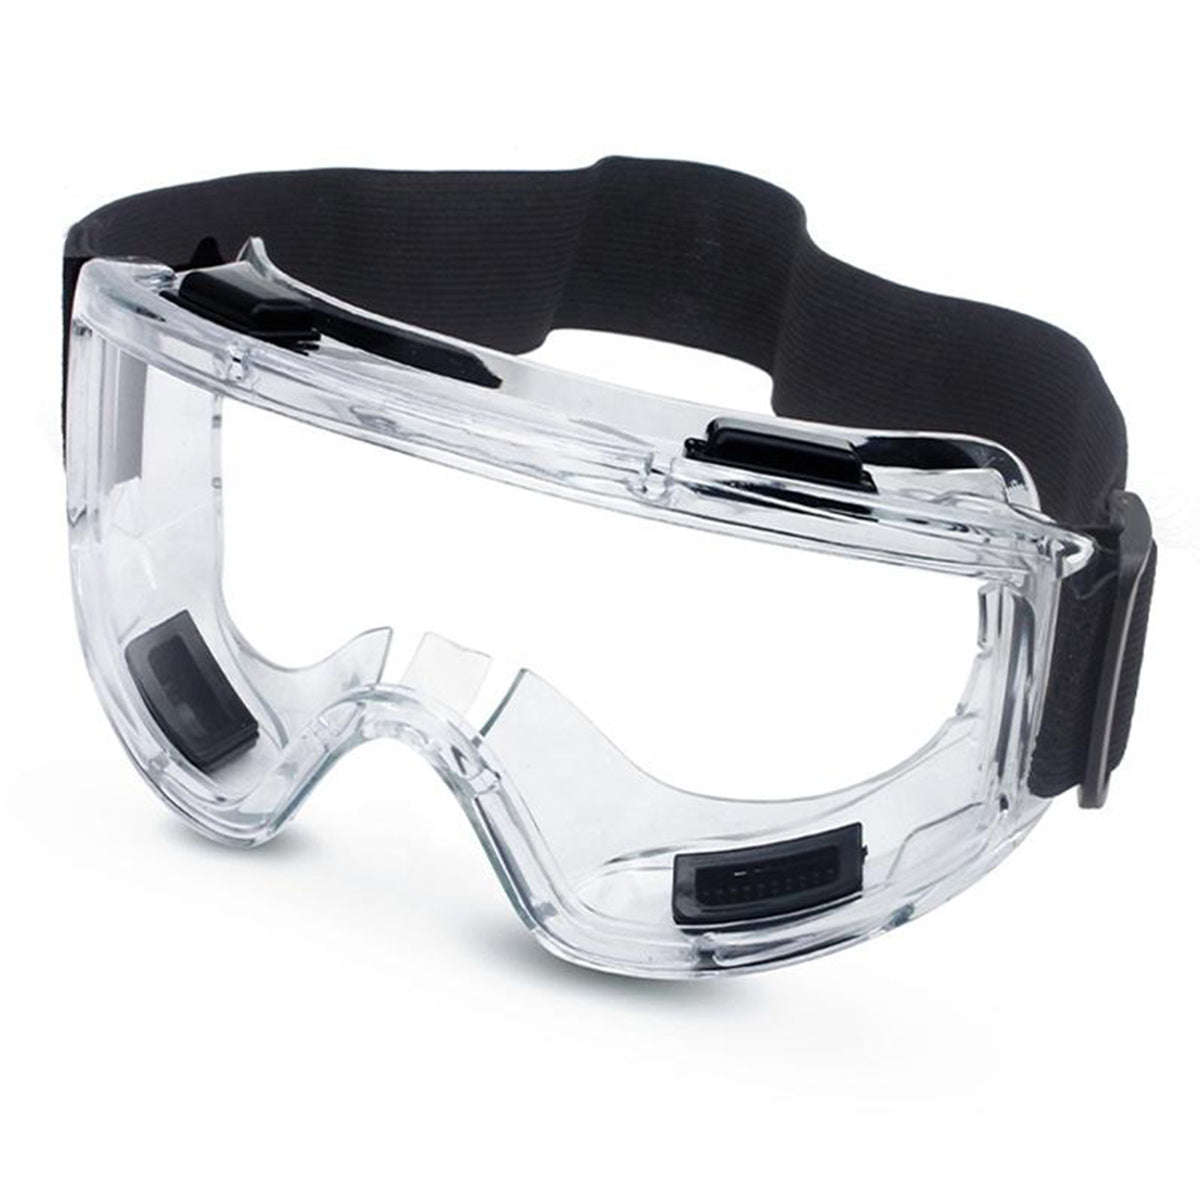 Side profile product image of Retsing ski goggle style-safety goggles.